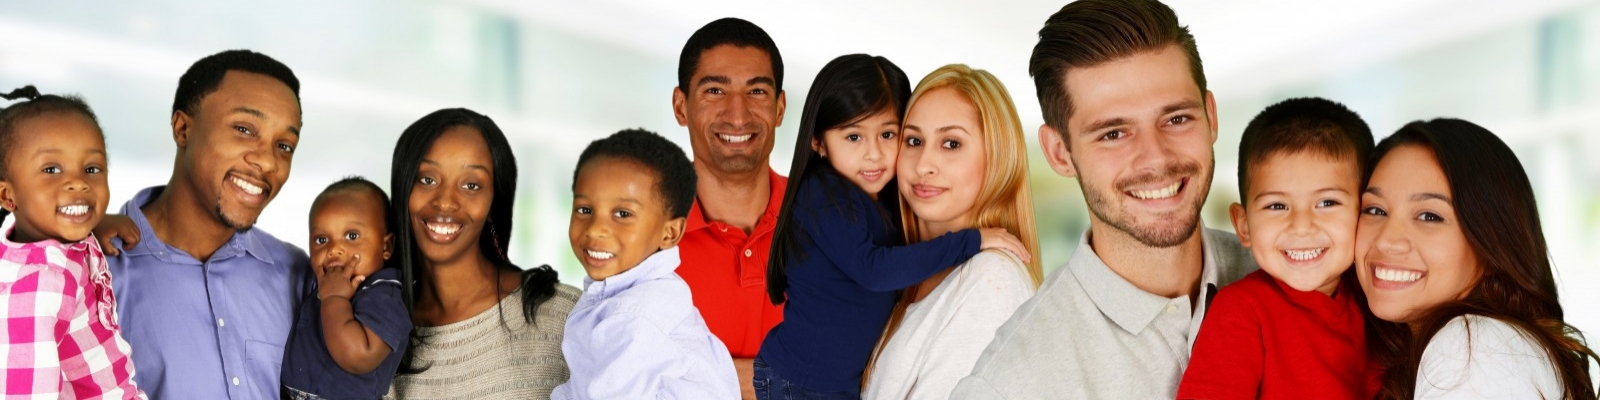 bigstock-Group-of-different-families-to-86045477_1600x400_acf_cropped